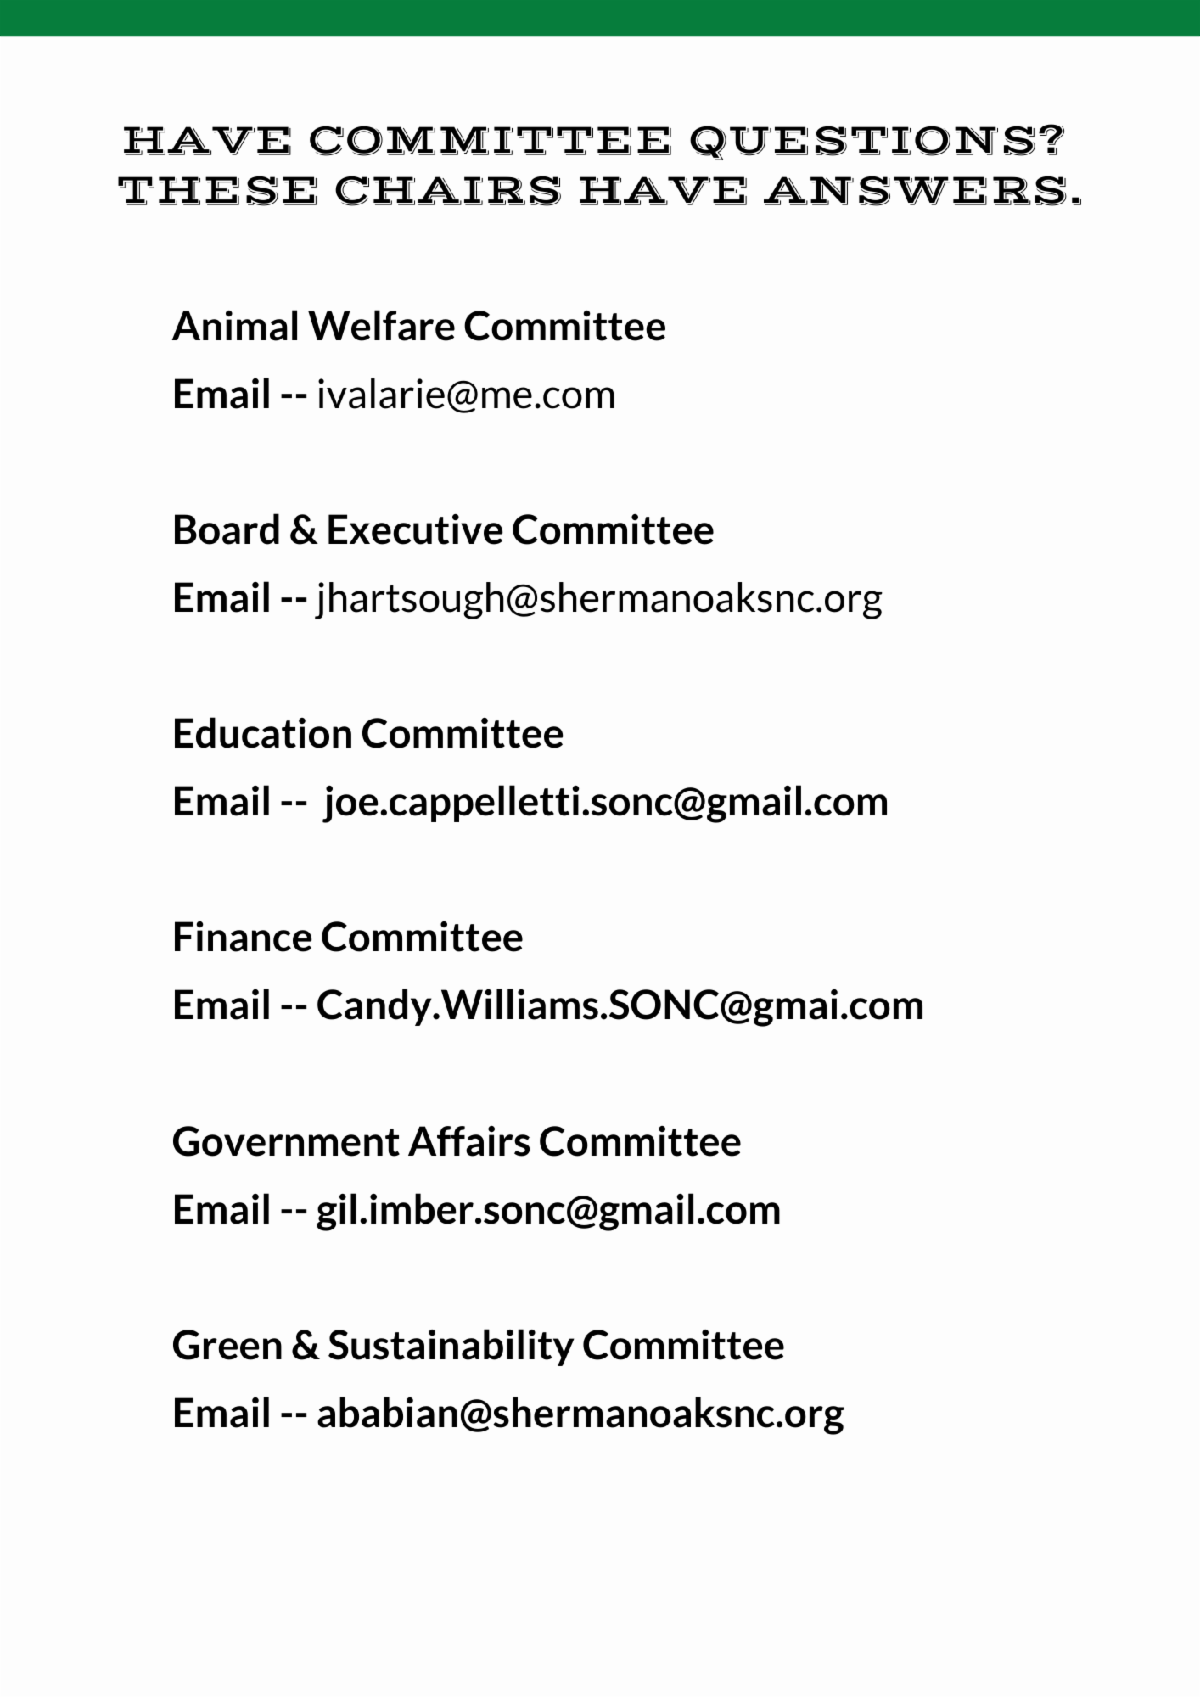 Animal Welfare Committee  ivalarie at me.com Board & Executive Committee jhartsough at shermanoaksnc.org Education Committee joe.cappelletti.sonc at gmail.com Finance Committee Candy.Williams.SONC at gmail.com